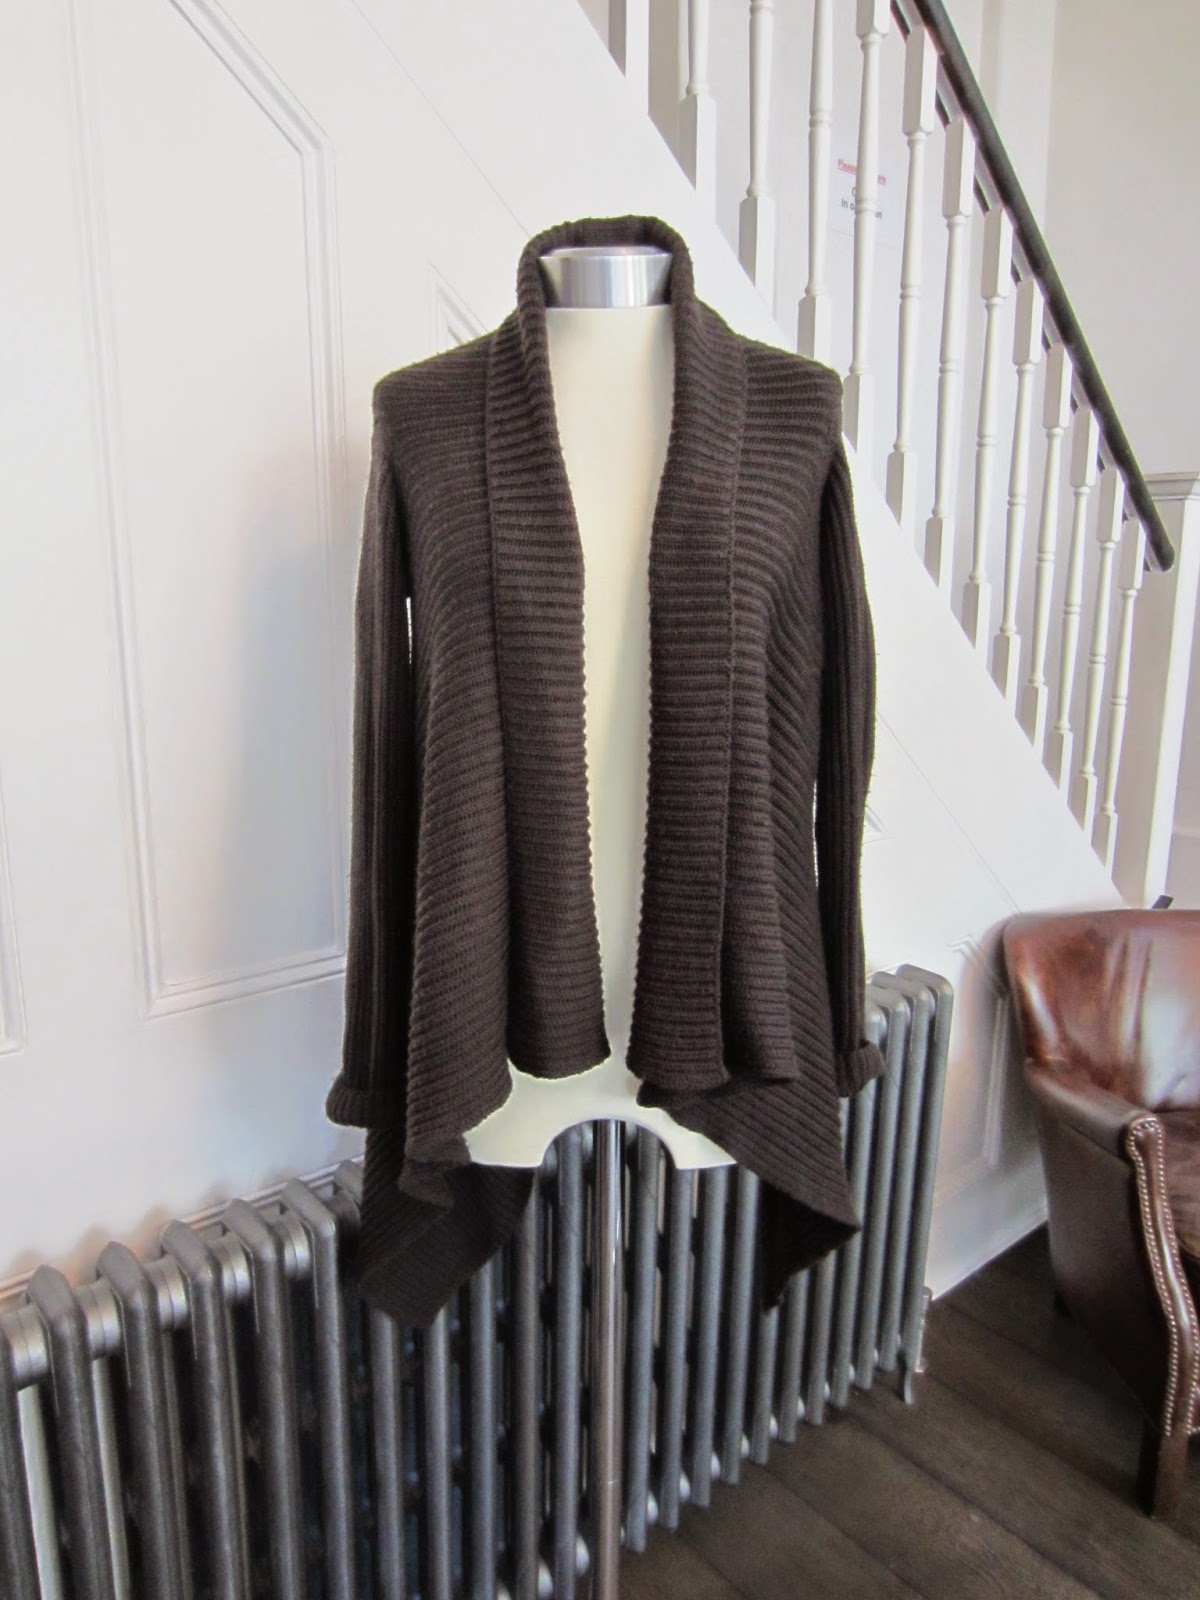 Rick Owens Chocolate Brown Merino Wool Cardigan